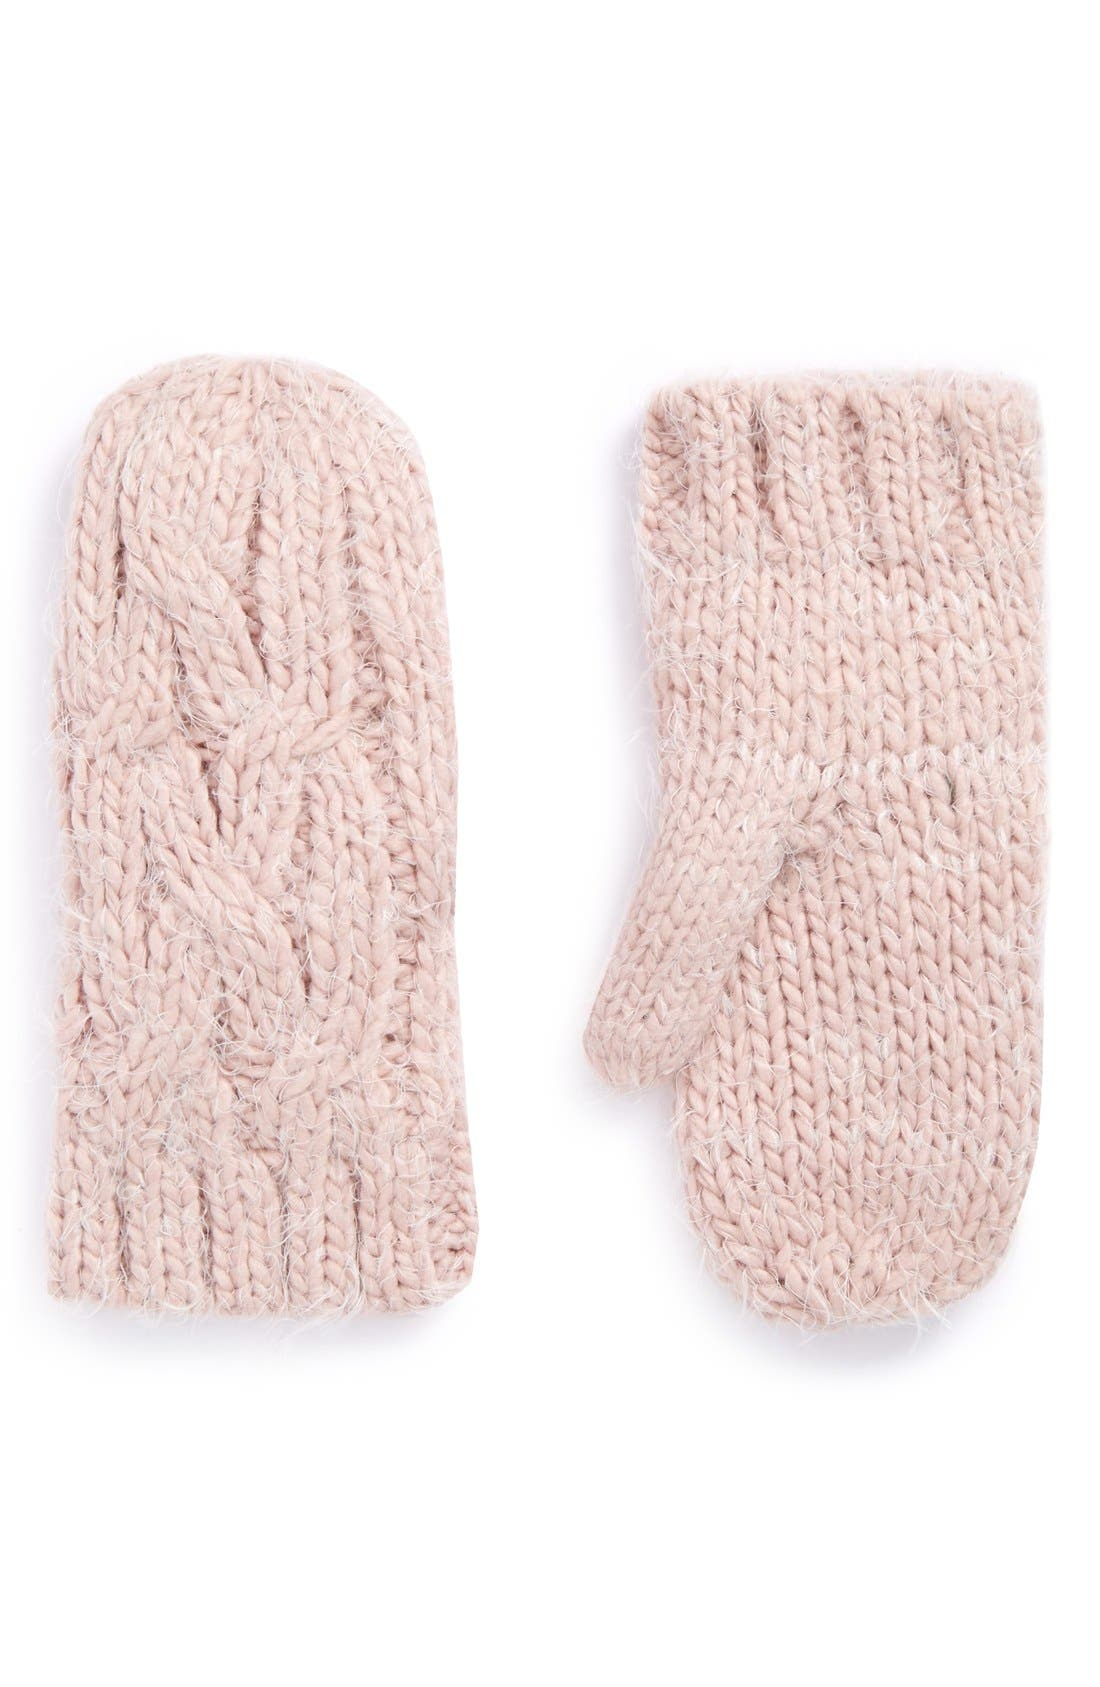 Alternate Image 1 Selected - Ruby & Bloom 'Eyelash' Cable Knit Mittens (Big Girls)